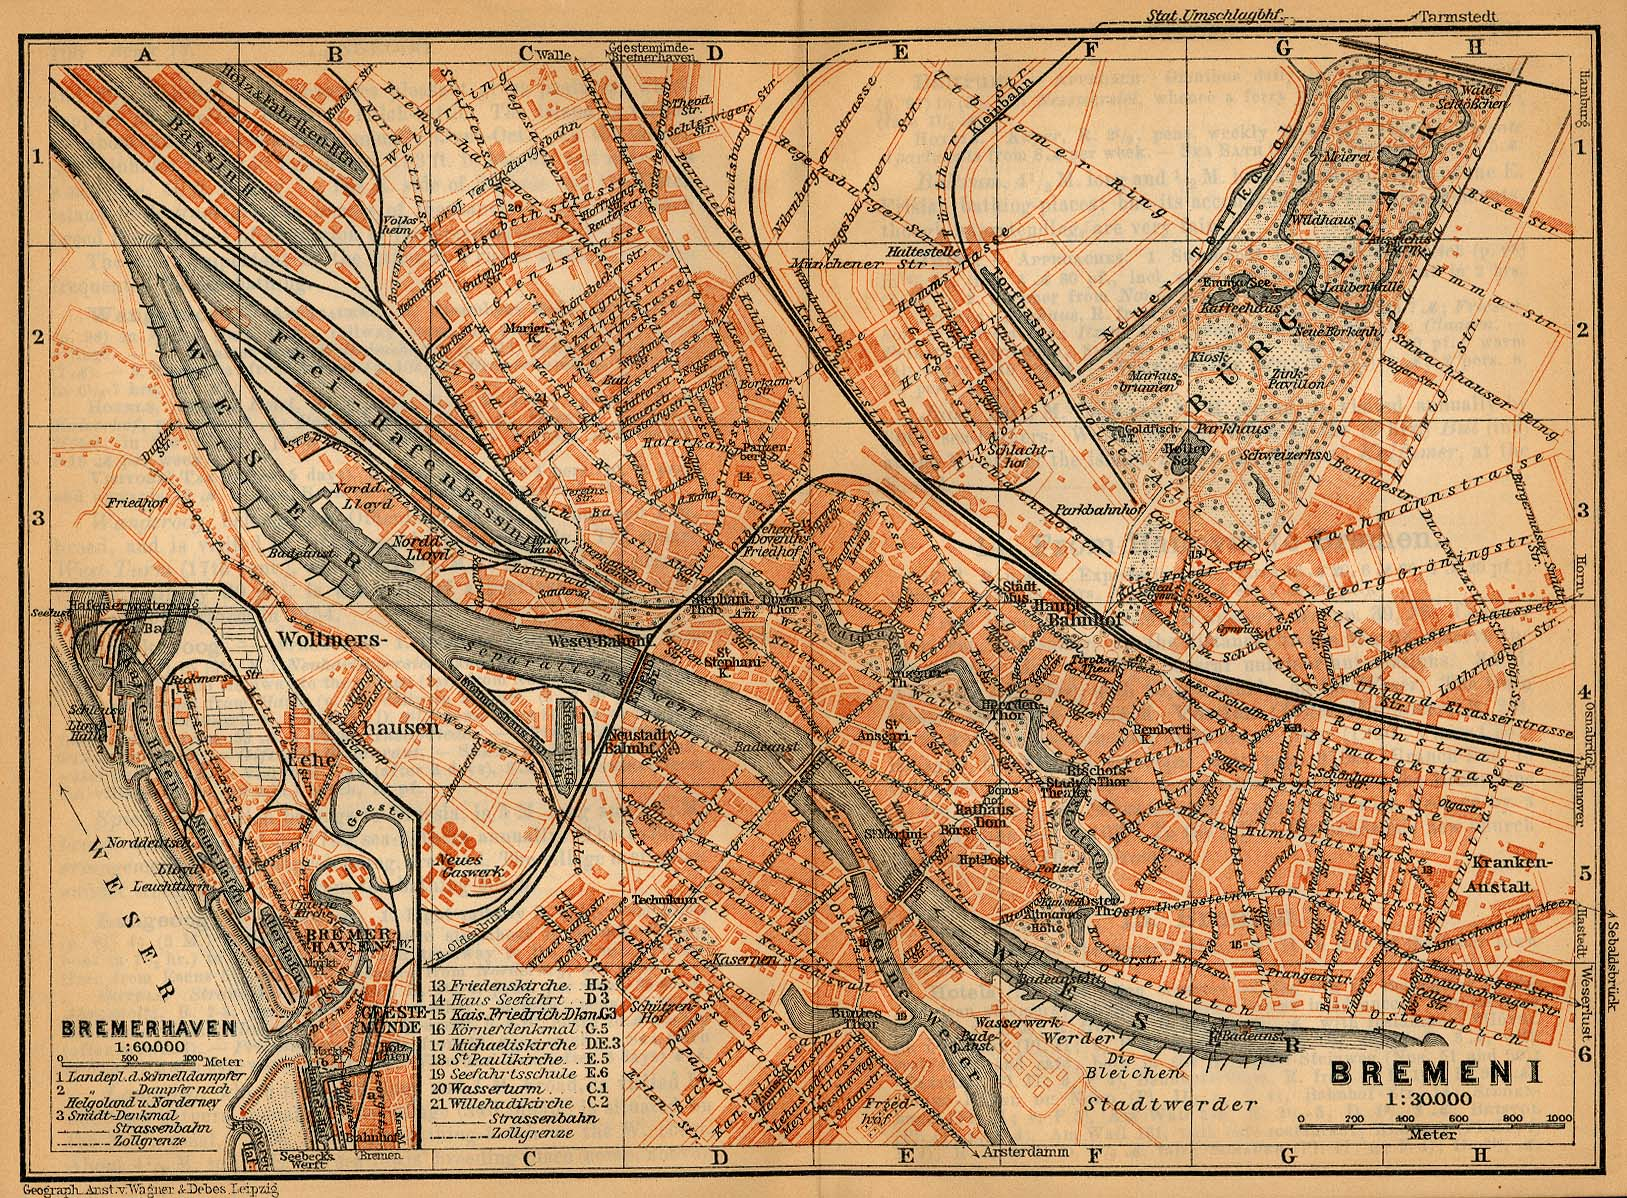 Bremerhaven Map, Germany 1910